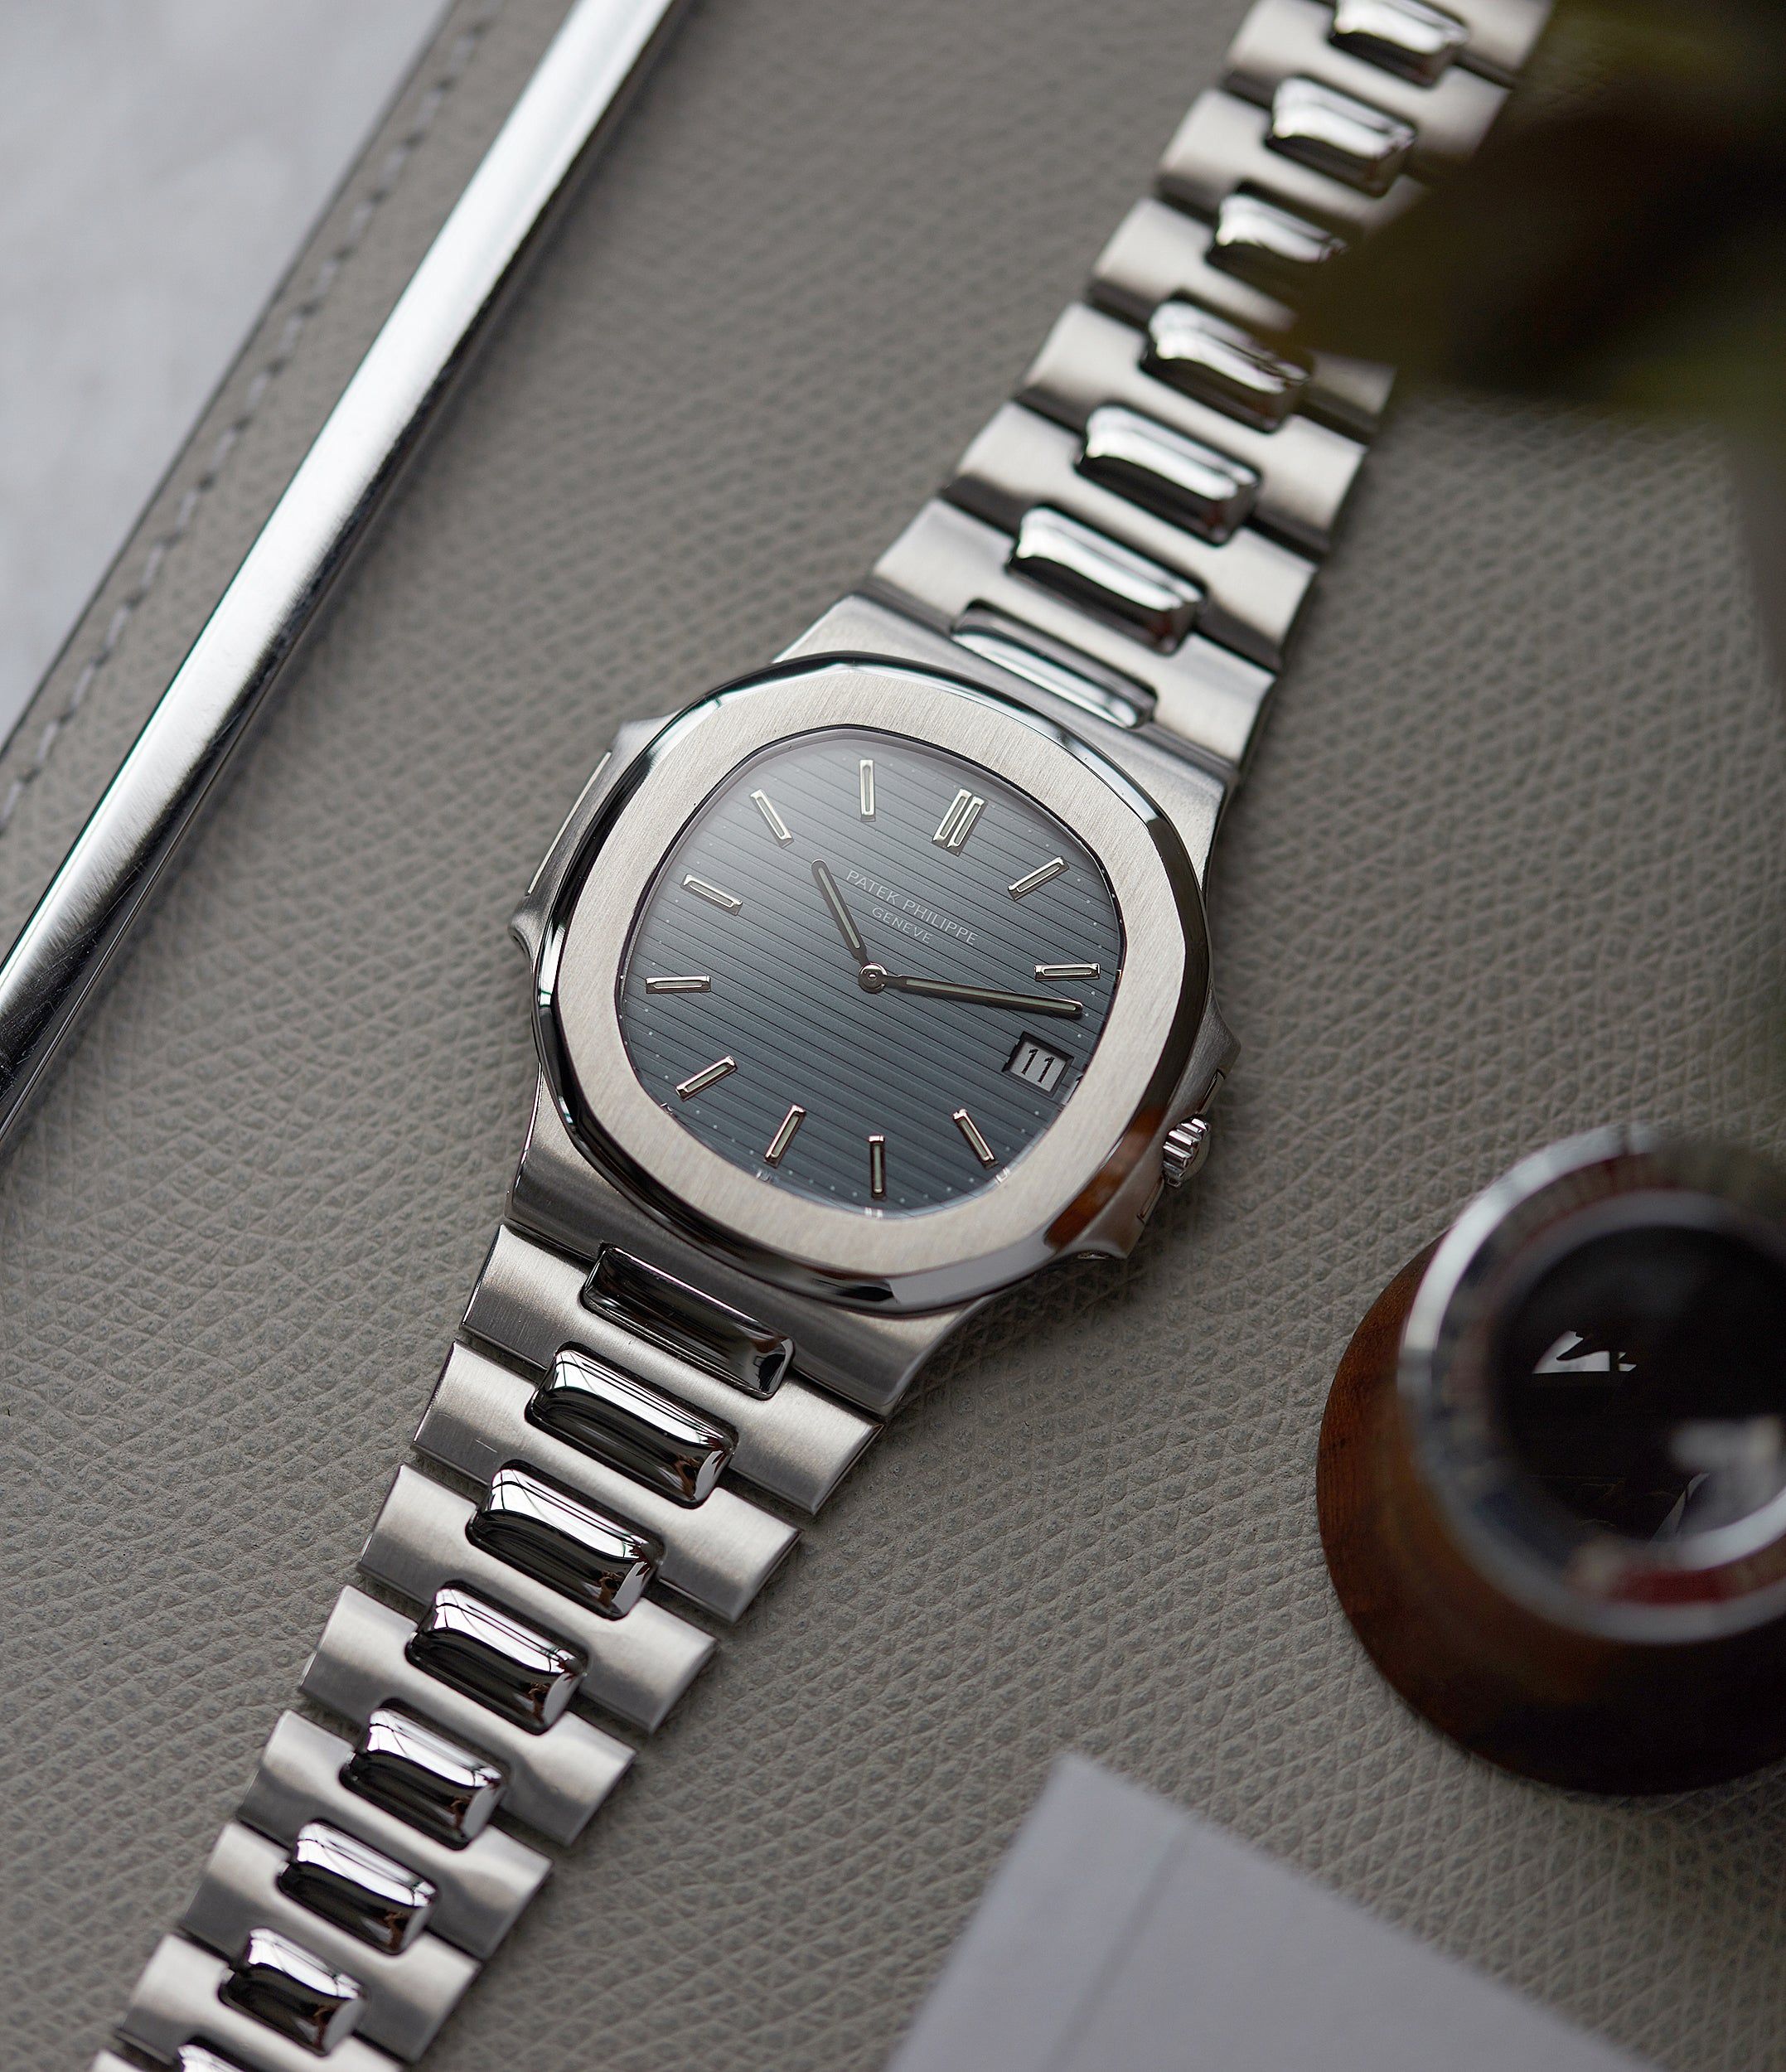 men's luxury sport steel watch vintage Patek Philippe Nautilus 3700/001A steel sport watch full set for sale online at A Collected Man London UK specialist of rare vintage watches